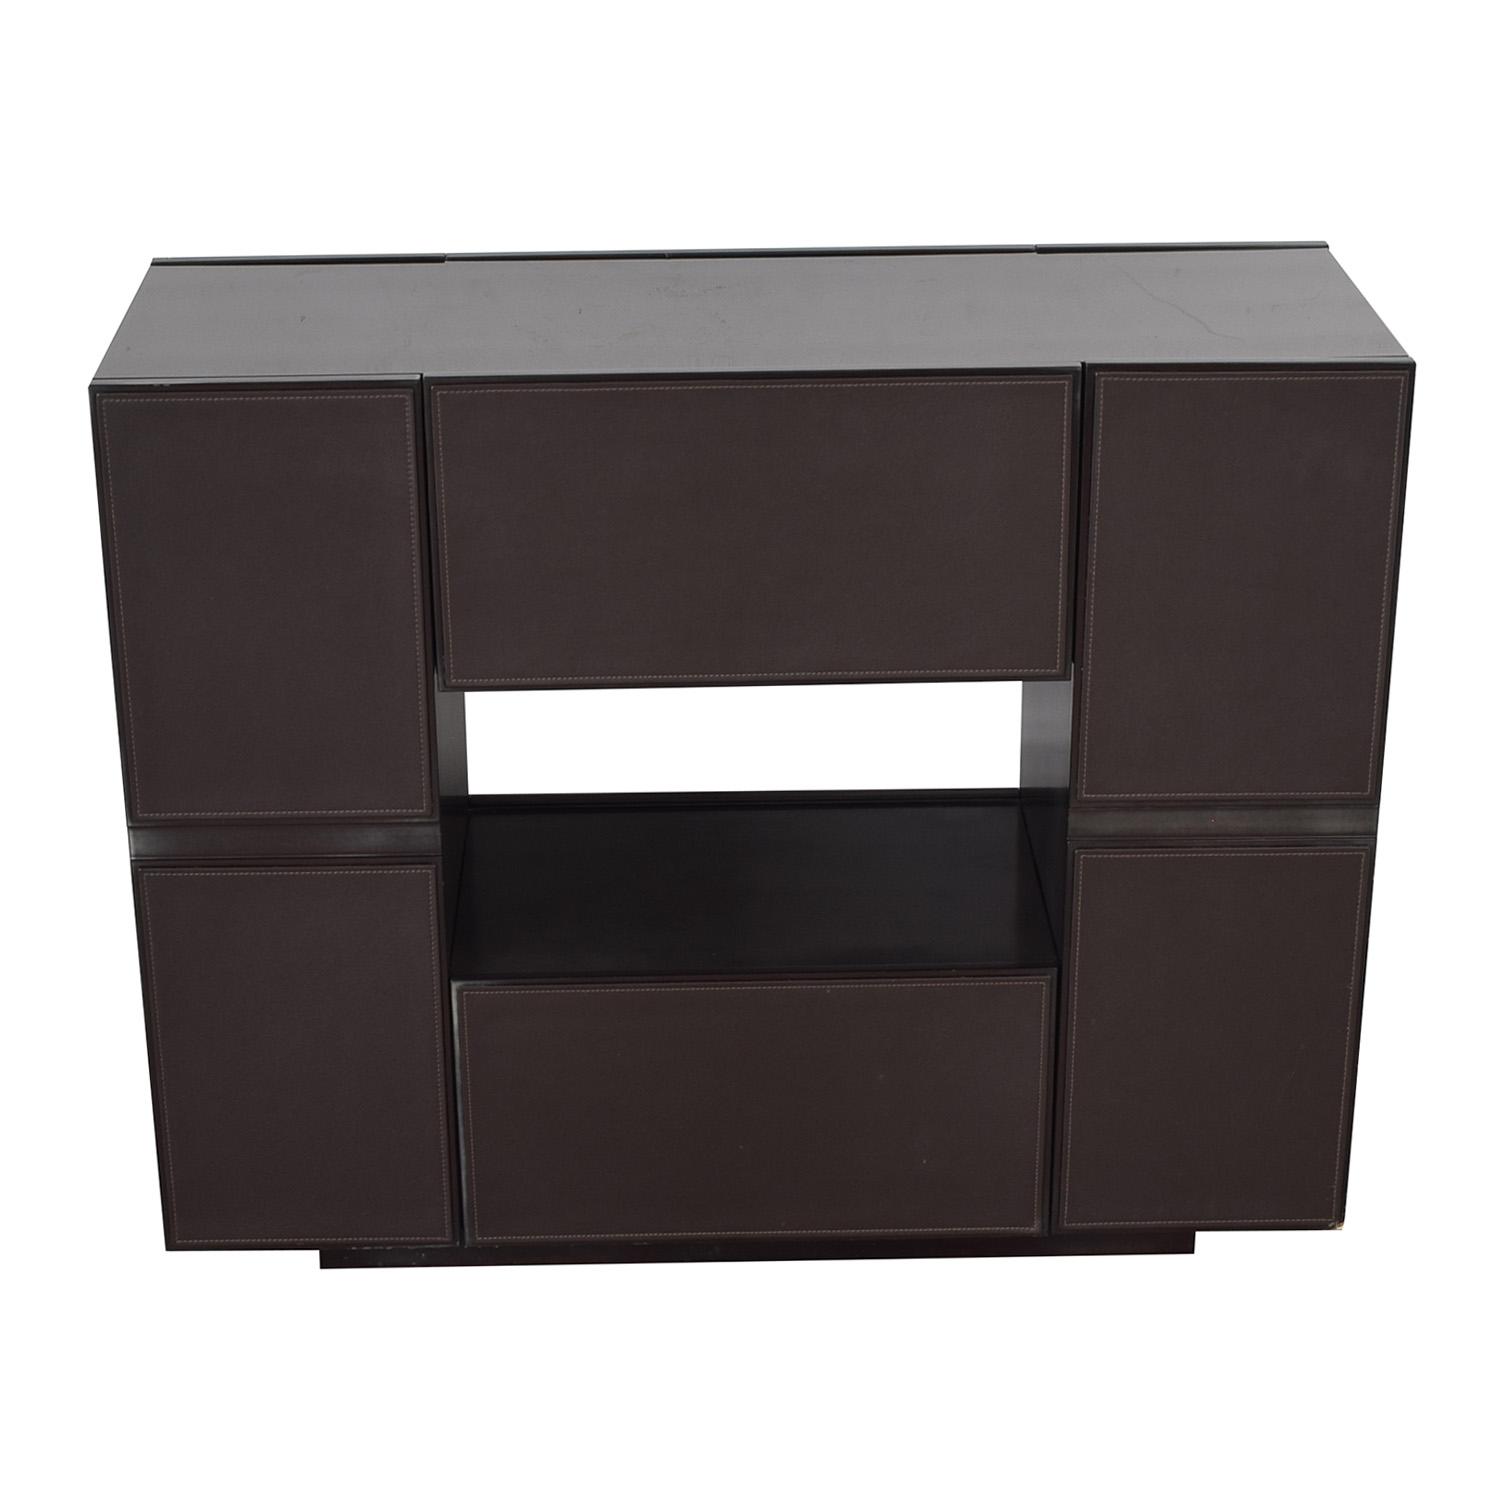 Moura Starr Moura Starr Bar Cabinet Storage